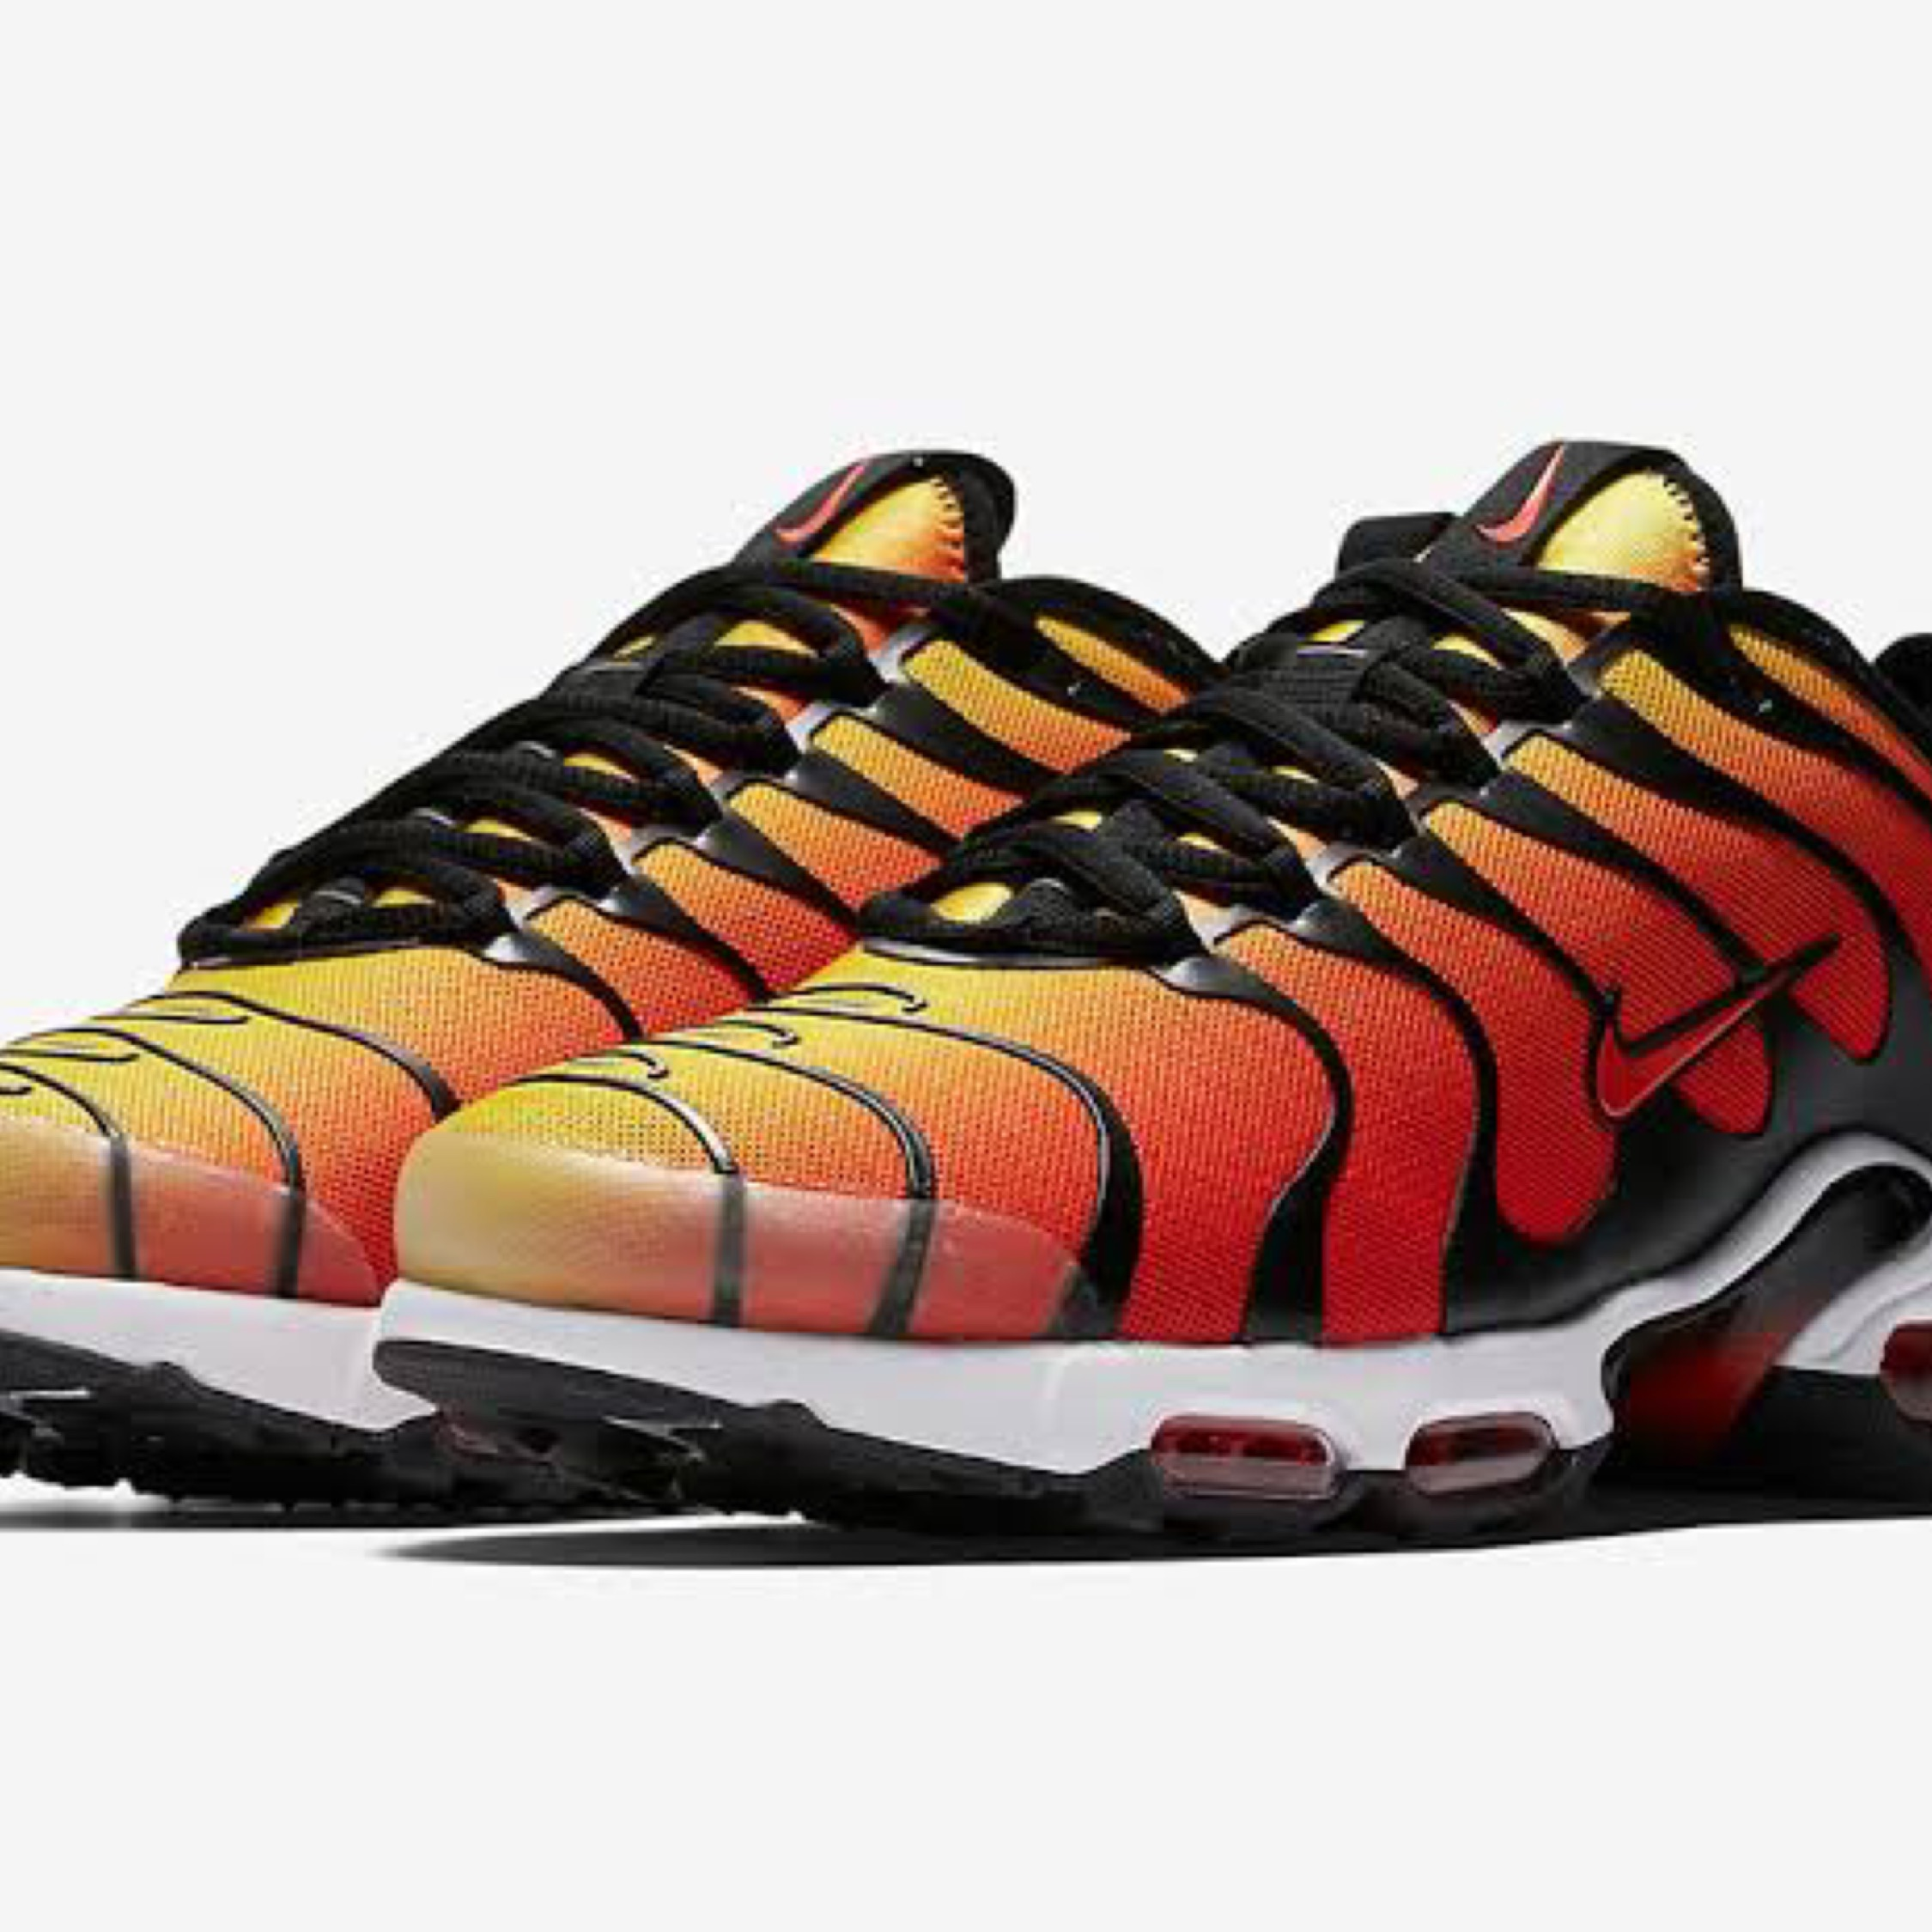 detailed look 1fda8 d434d Nike Air Max Tn Ultra Tiger